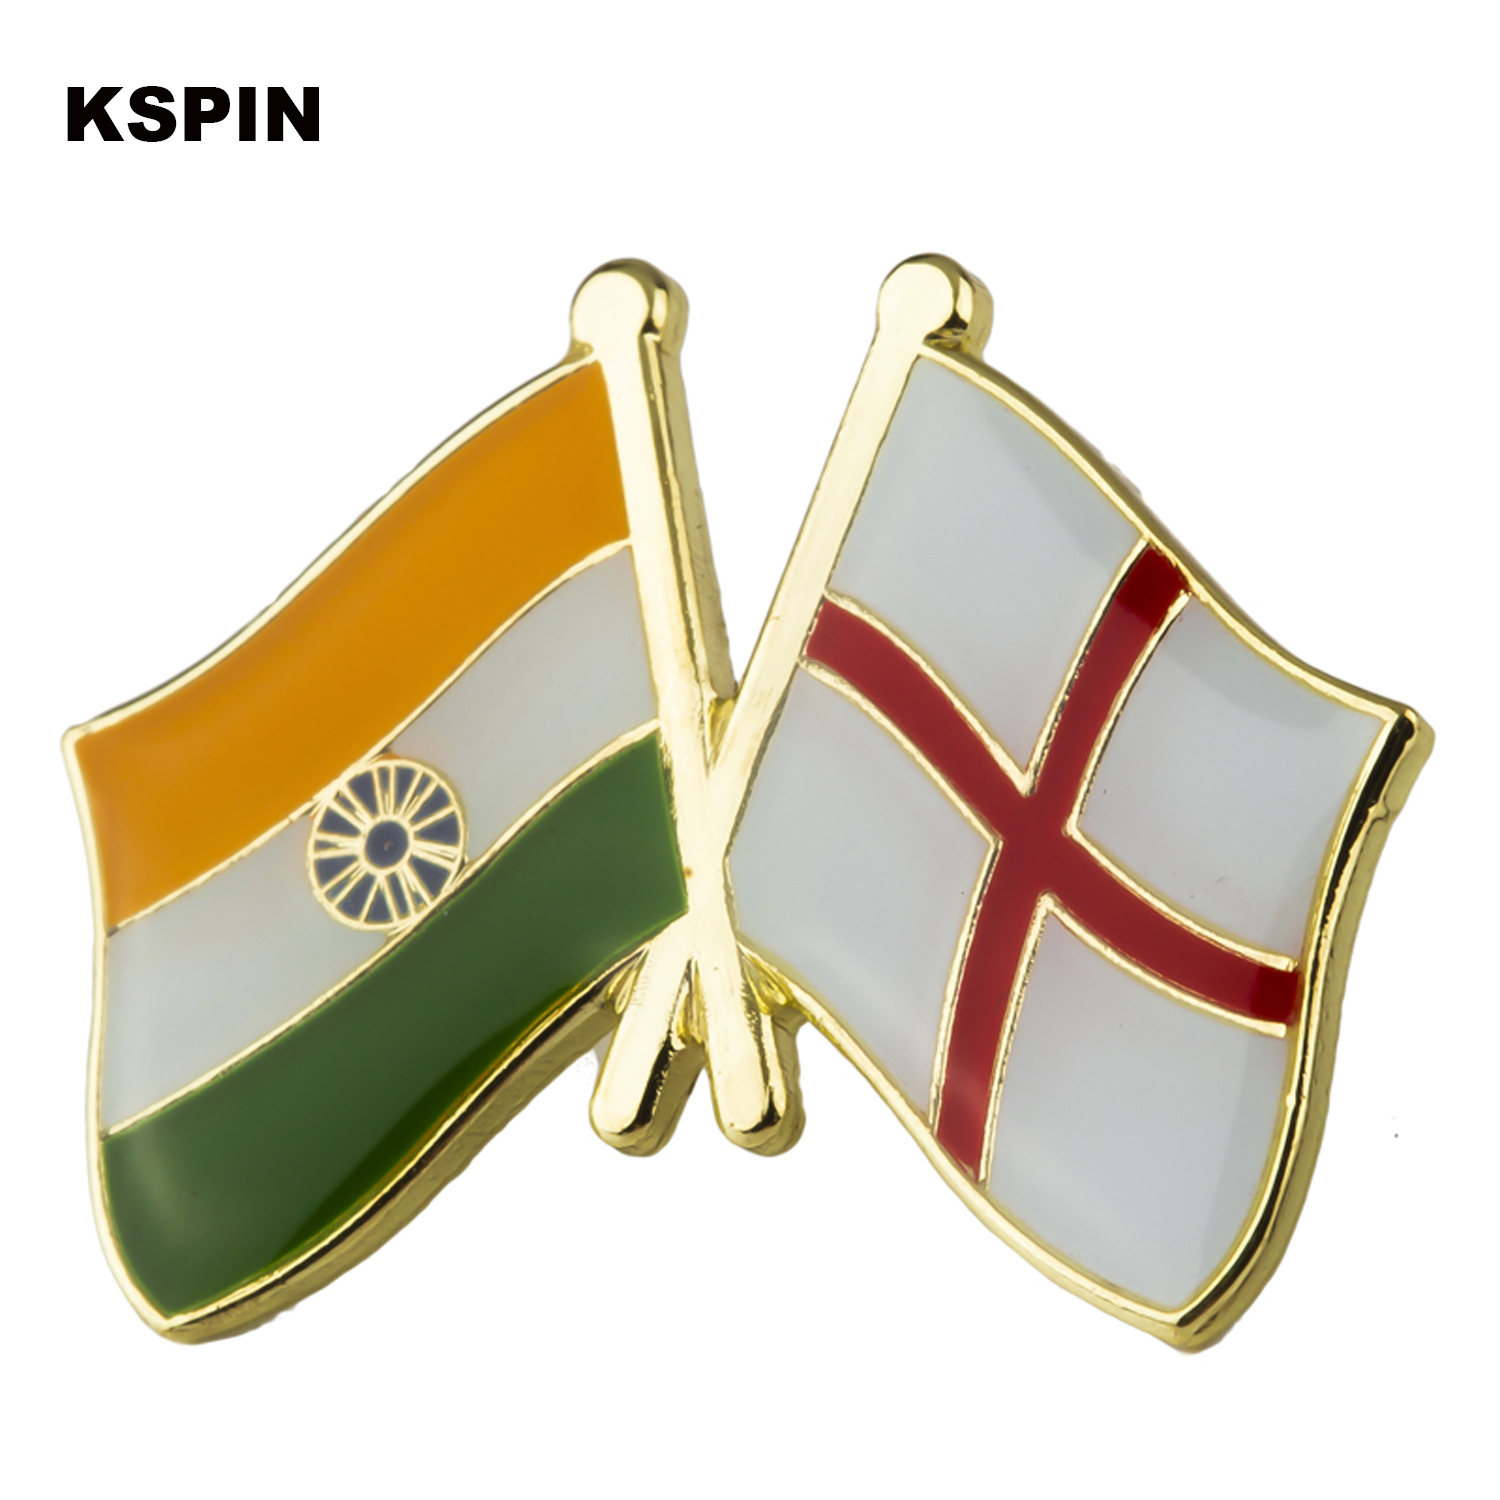 Home & Garden Badges 2019 Latest Design 1pcs Rainbow And Ireland Friendship Badge Icon Bag Decoration Buttons Metal Badges Brooch For Clothes Xy0240